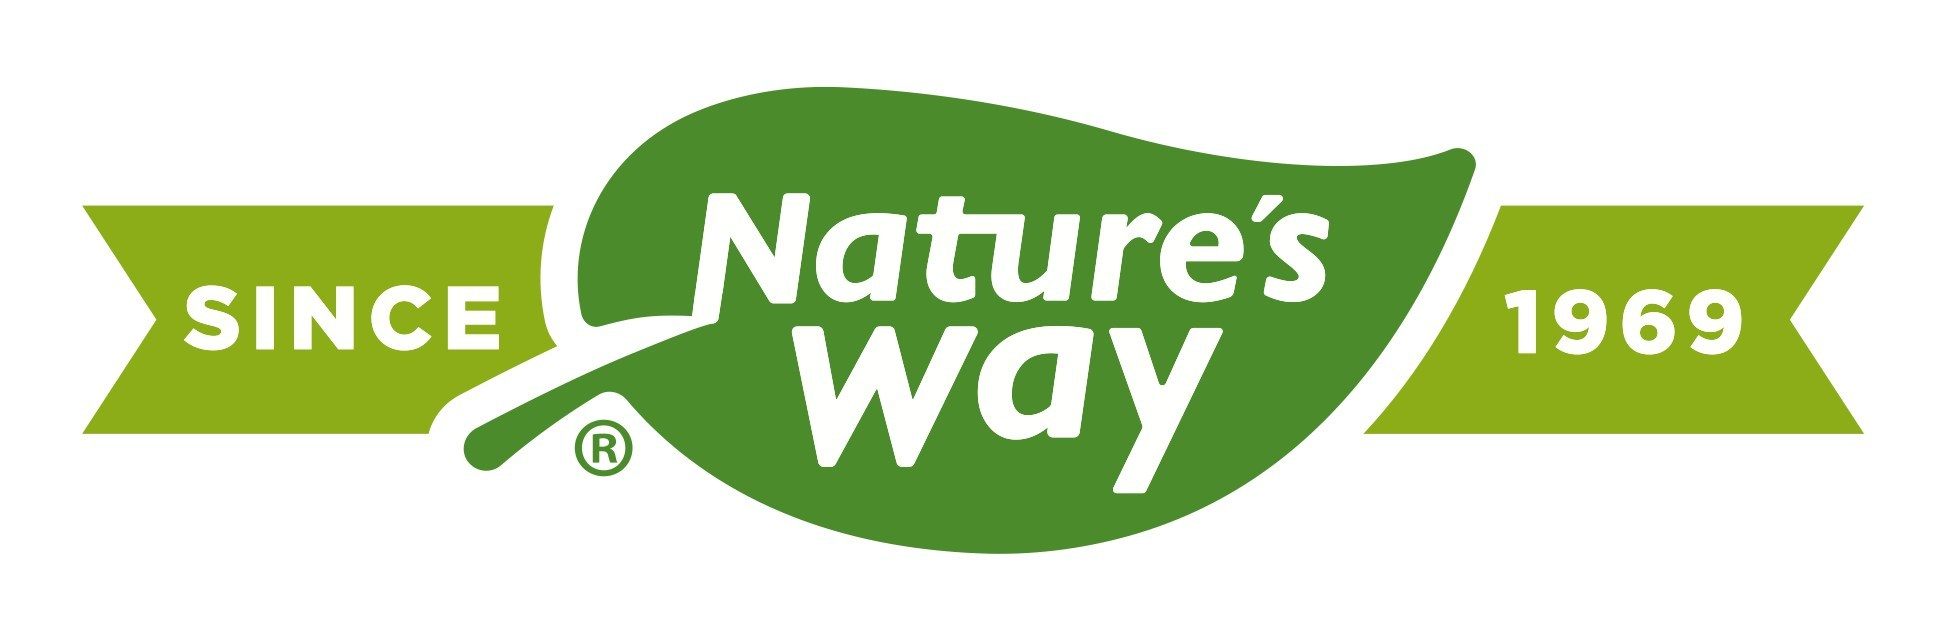 nature way logo